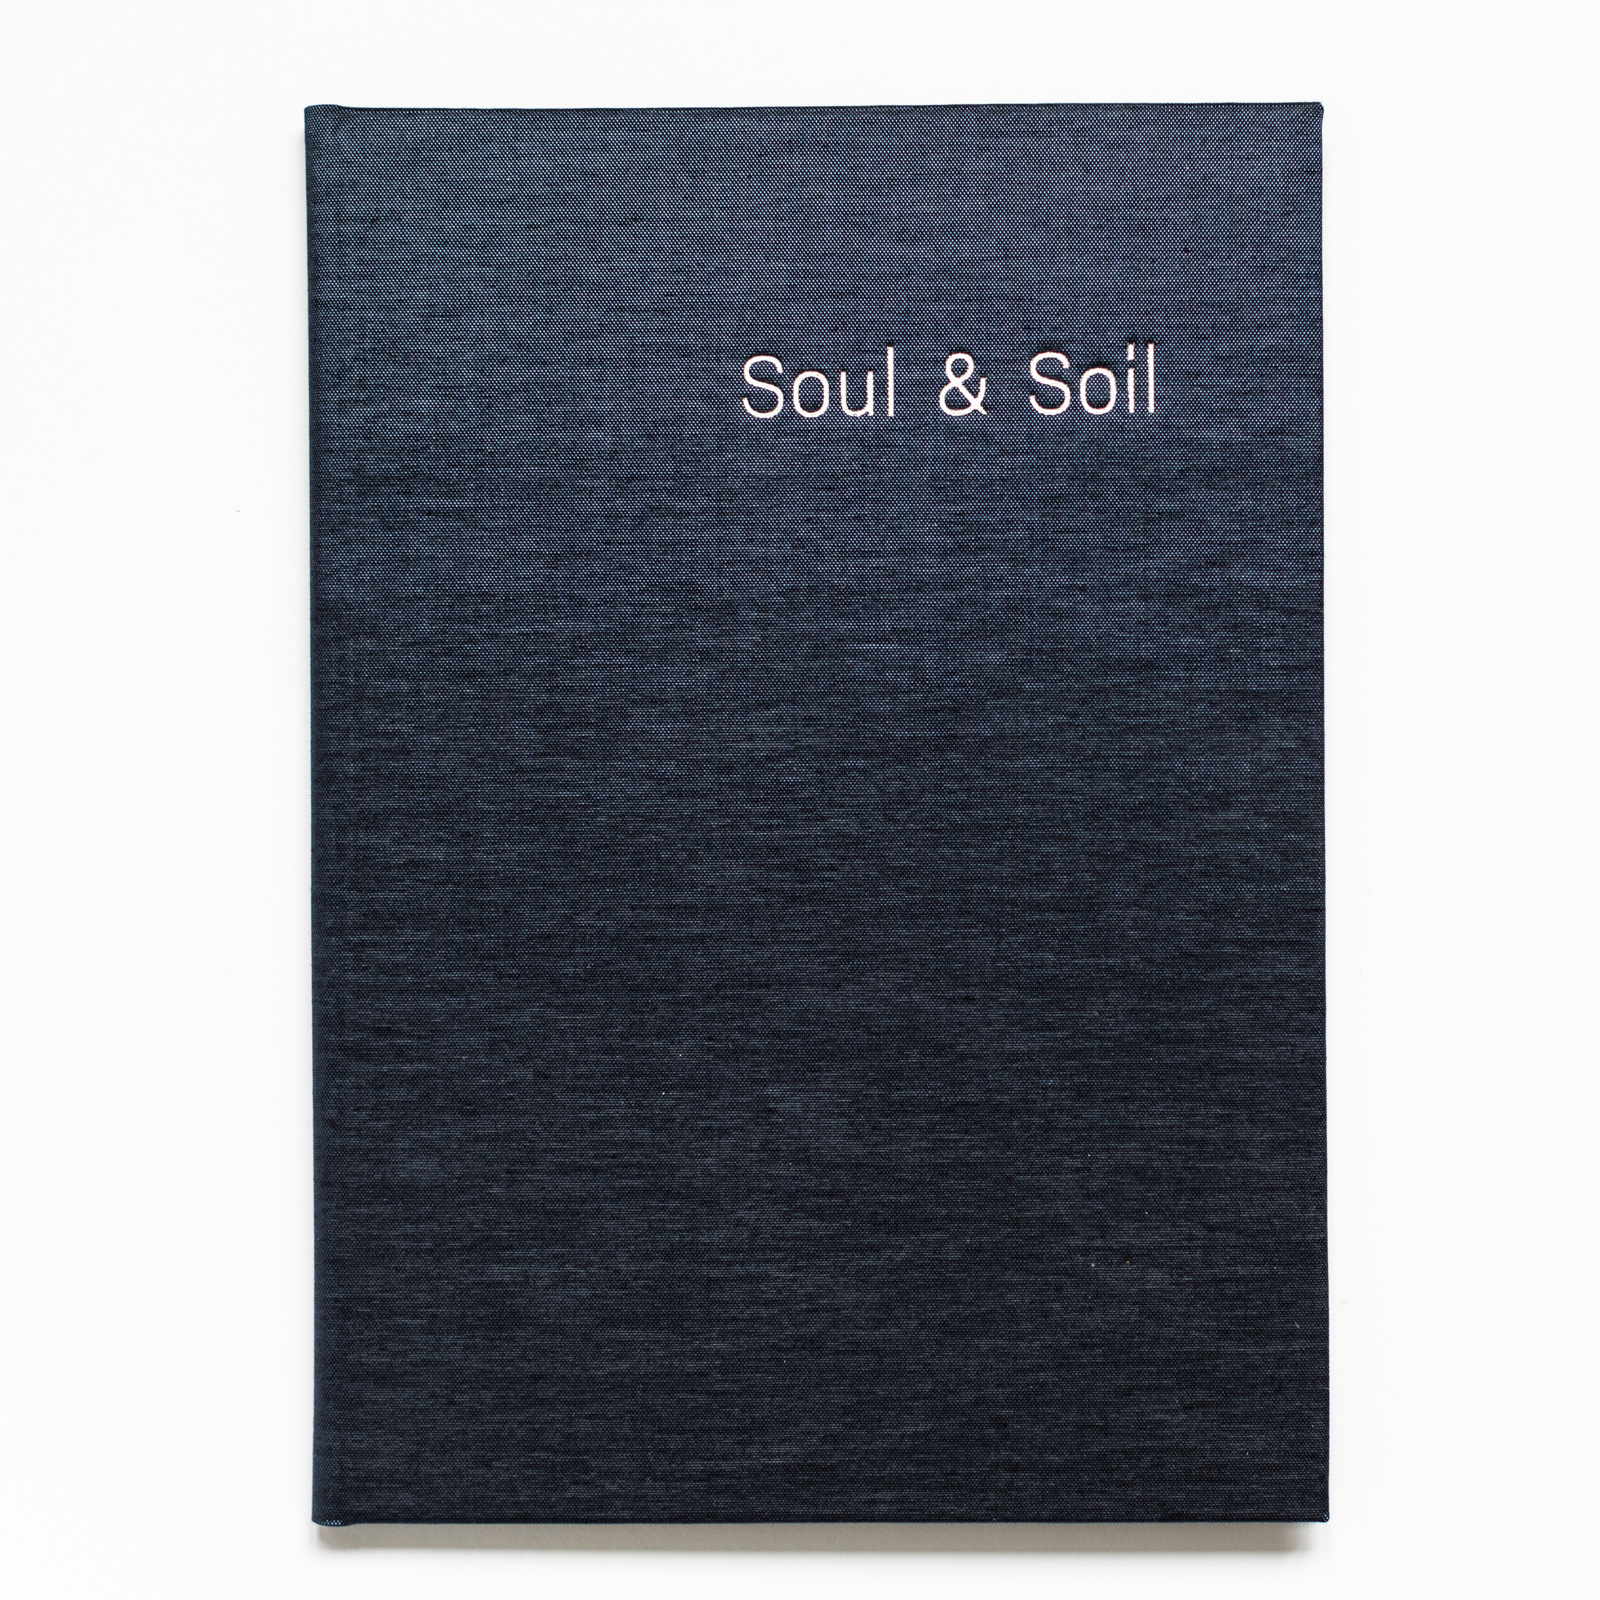 SOUL & SOIL / COLLECTOR'S EDITION